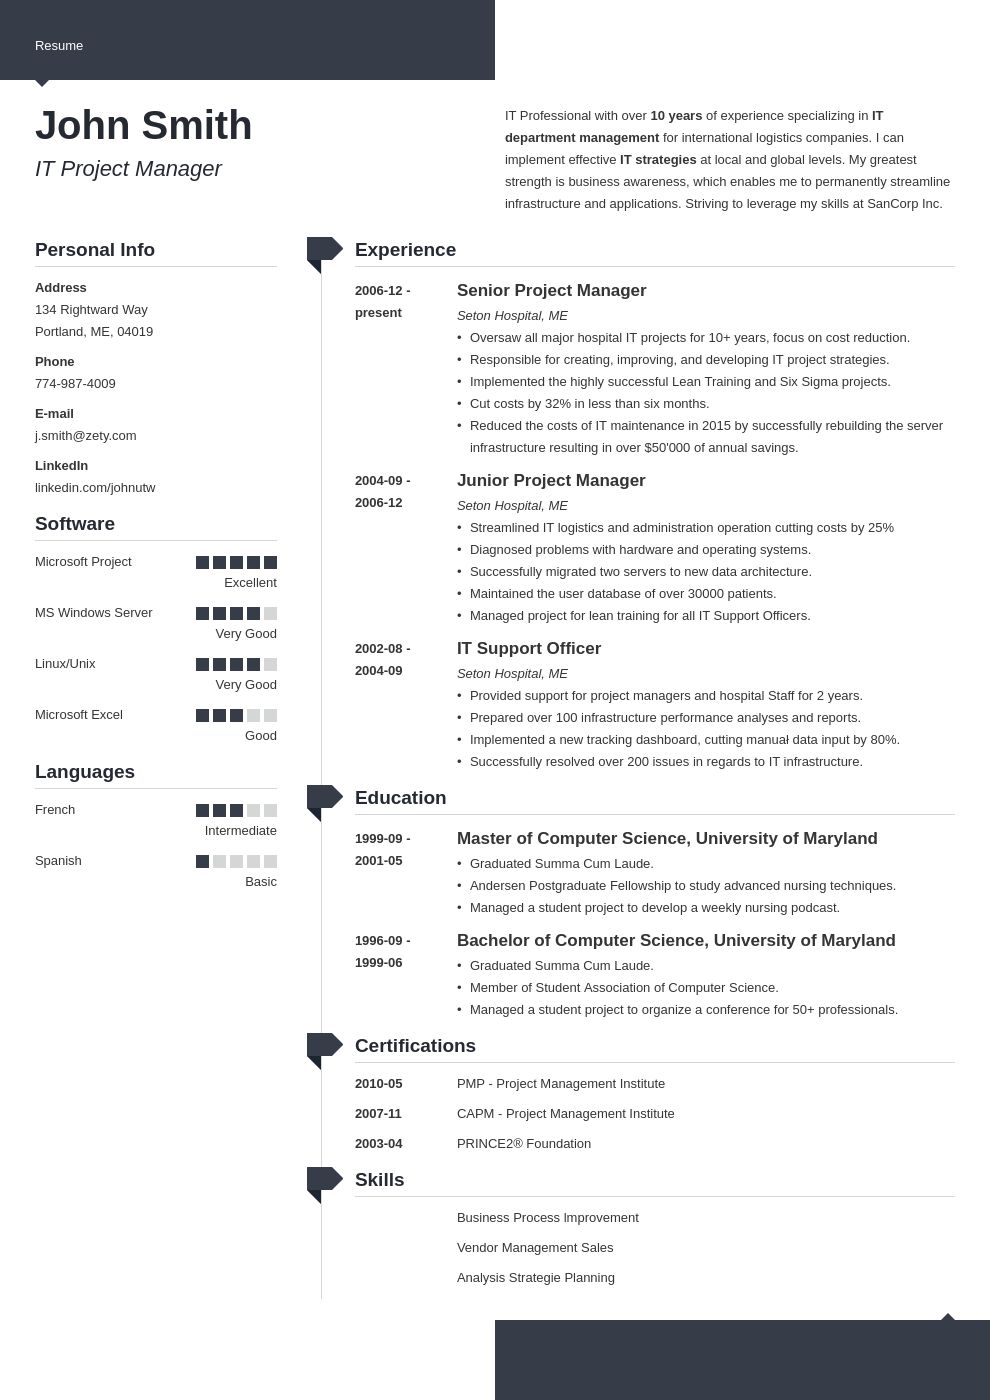 Best Resume Templates 2020: Top 14+ Picks to Download